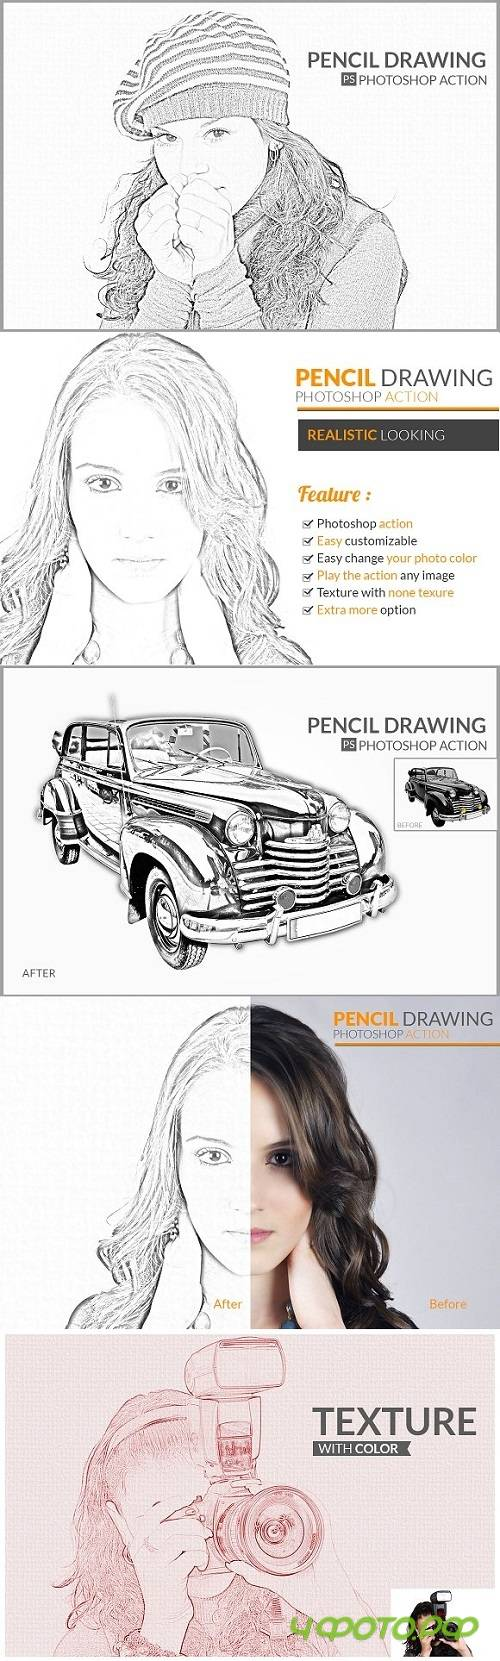 Realistic pencil drwaing action 1490053